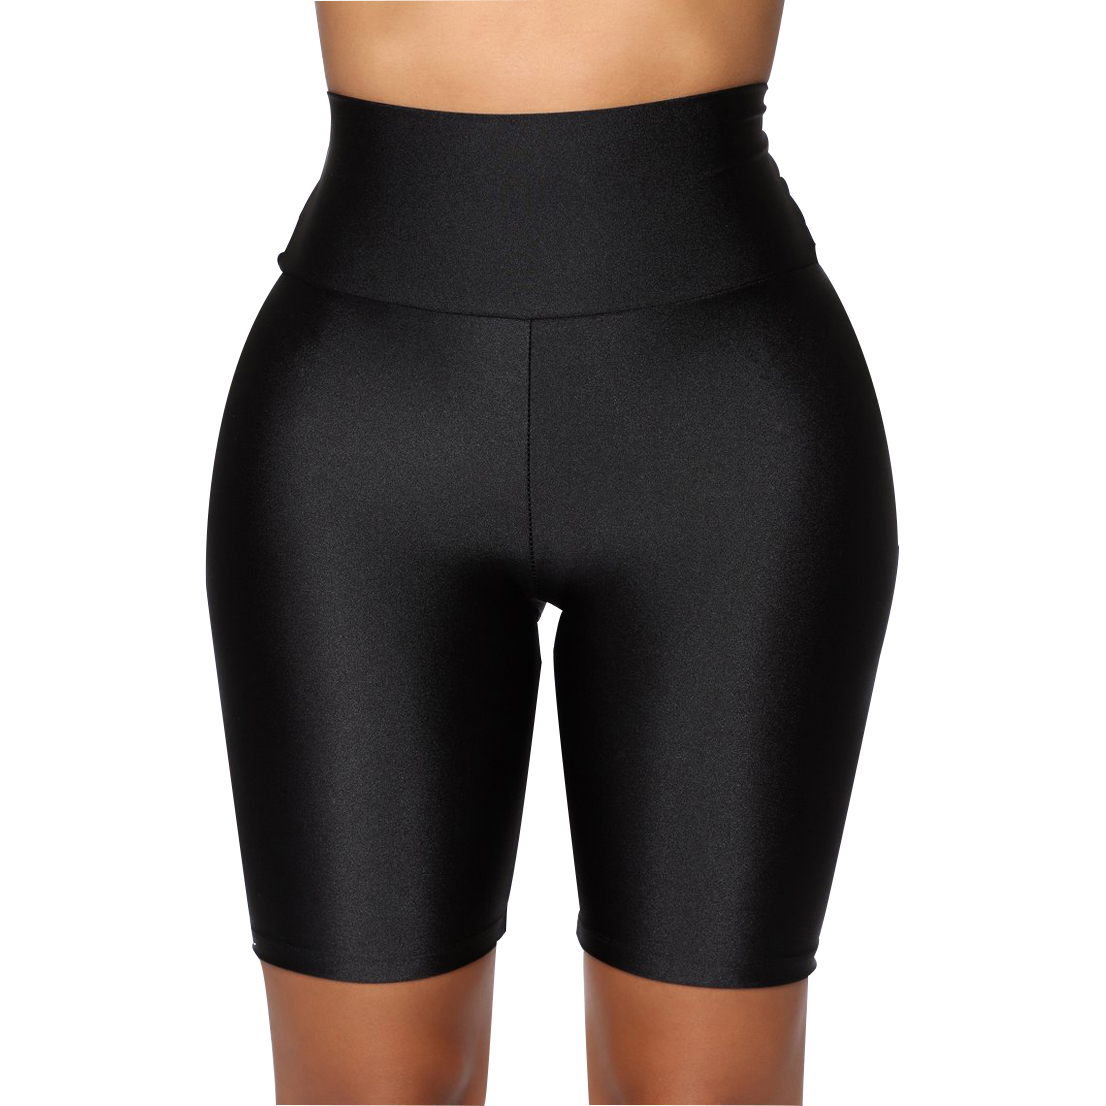 Womens Plain Sports Gym Cycling Skinny Fit High Waist Shorts Lady Summer Casual Solid Basic Stretchy Bodycon Short Pants